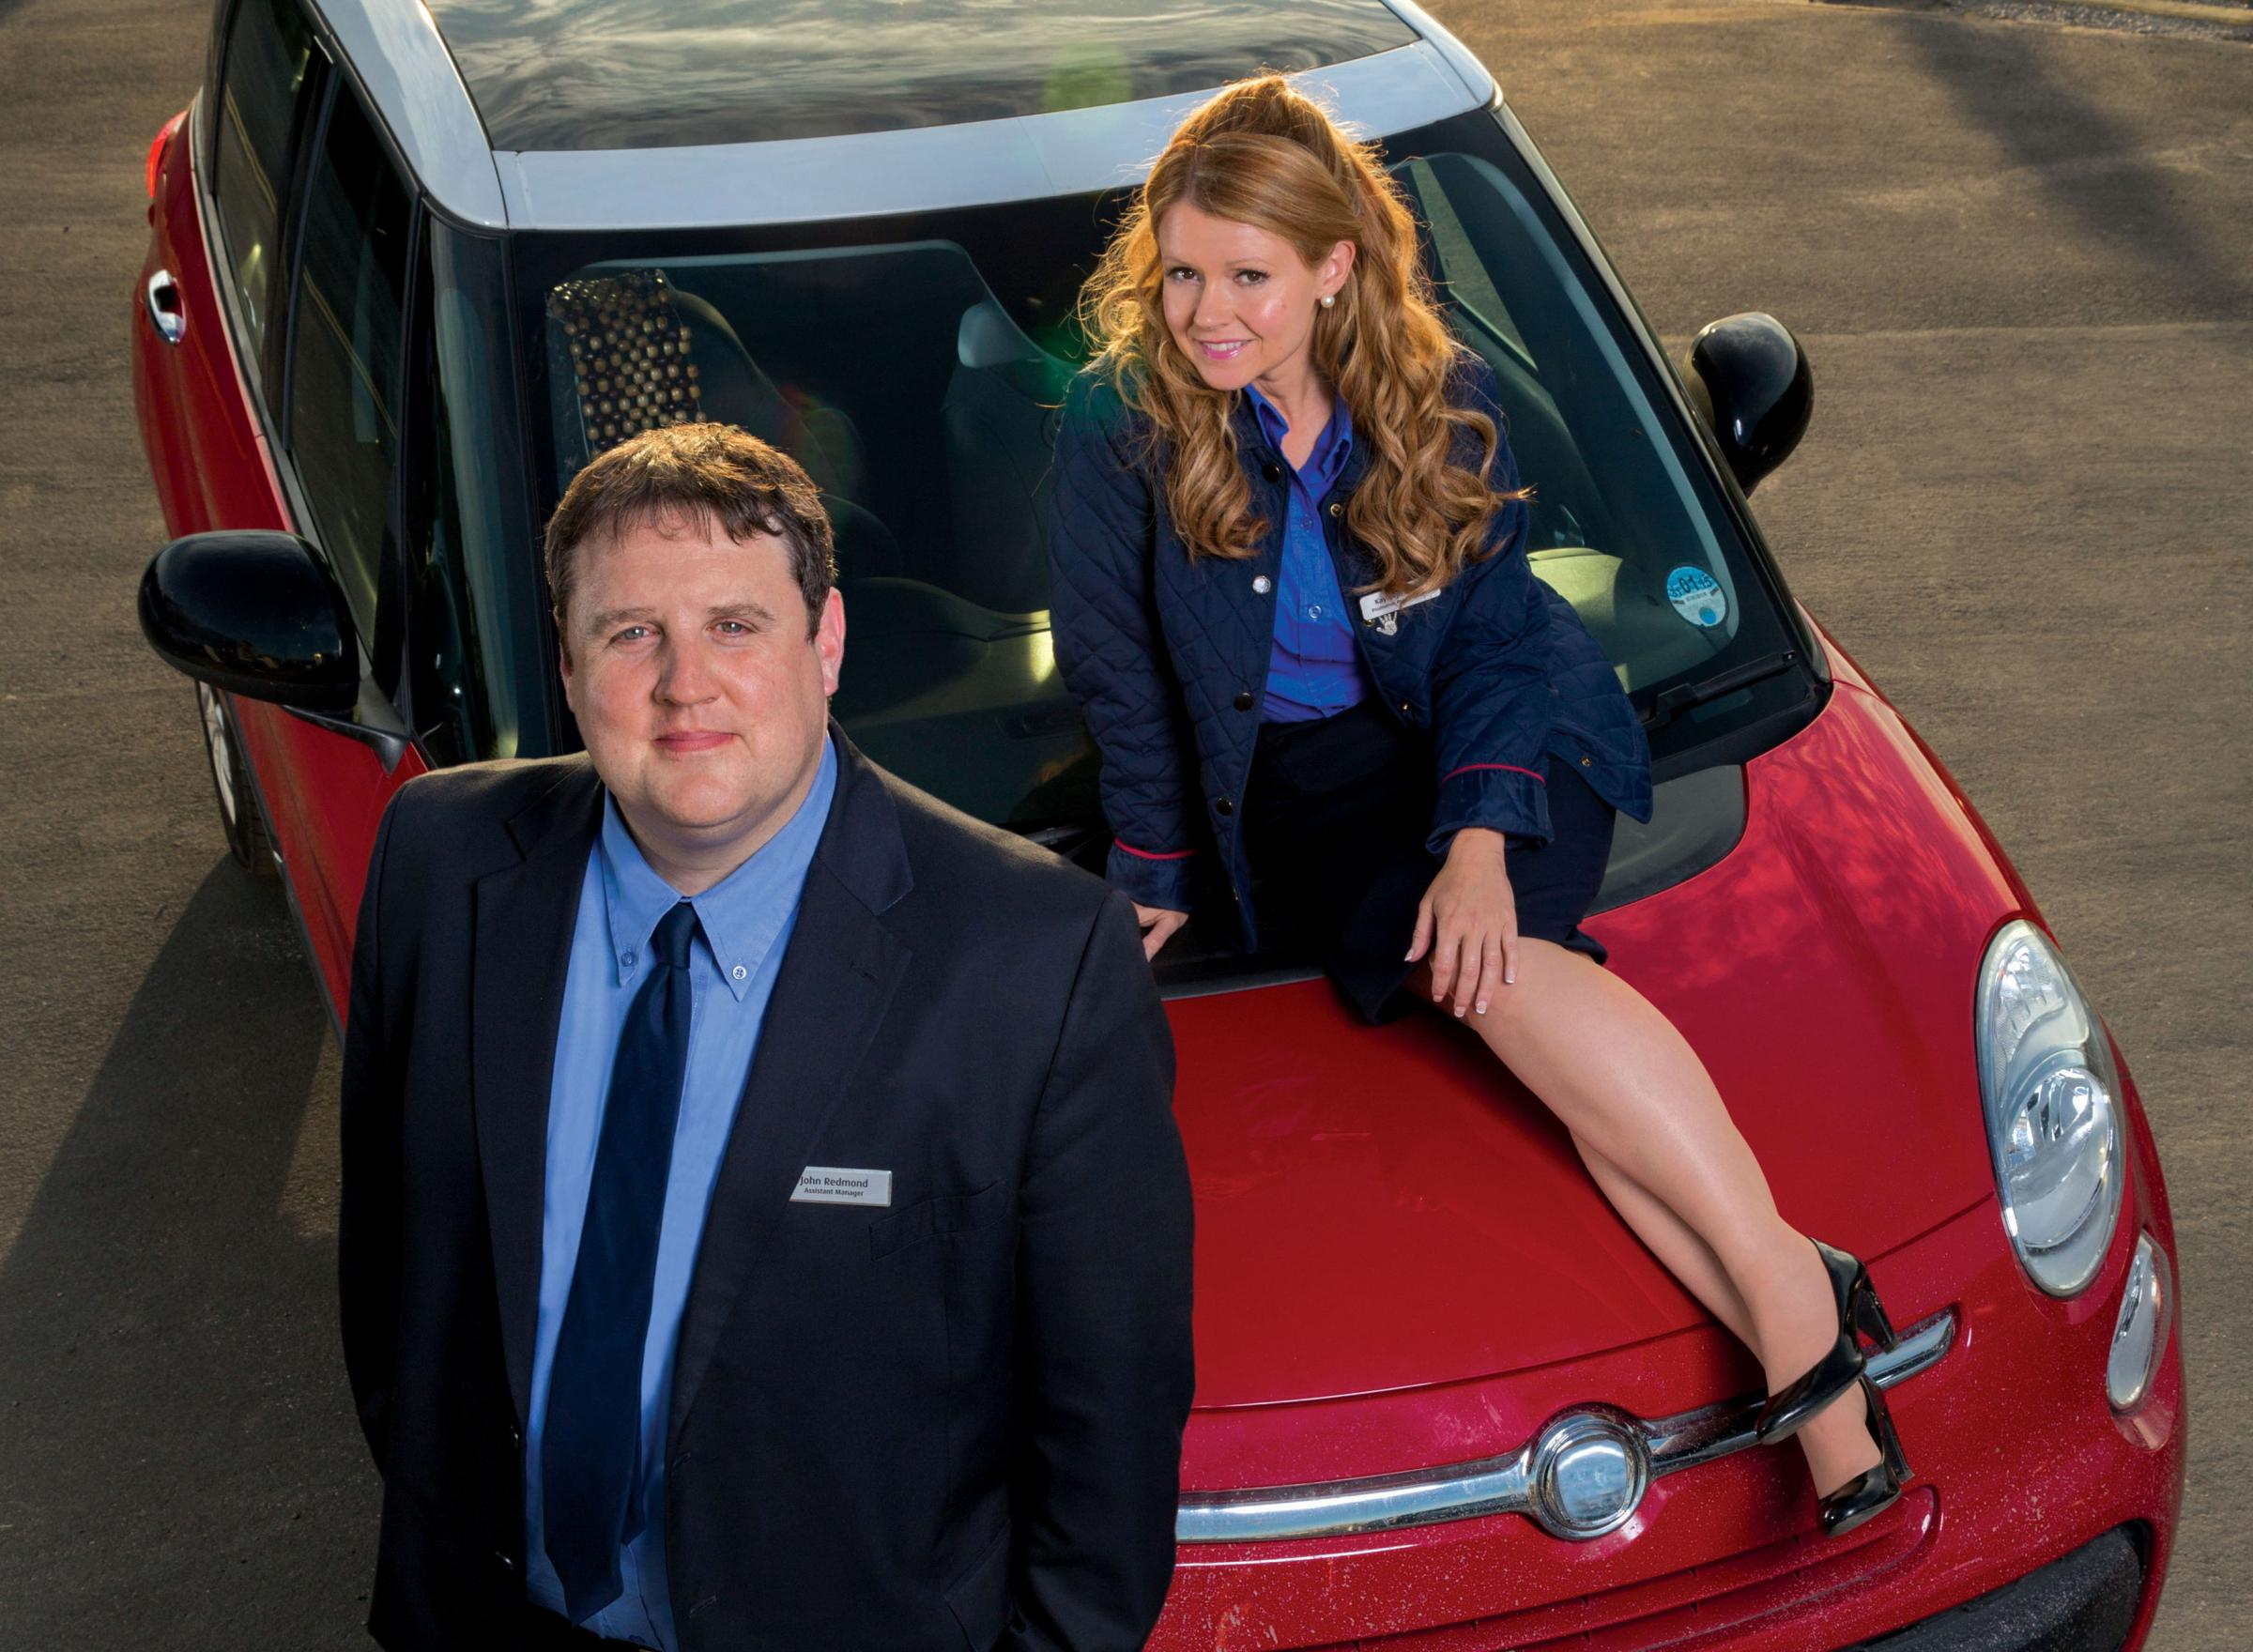 Peter Kay's Car Share has notched up more success, becoming the iPlayer's biggest comedy of the year. Figures reveal that the BBC1 show has had more than 10.6 million views on the catch-up service, making it iPlayer's most-requested comedy of